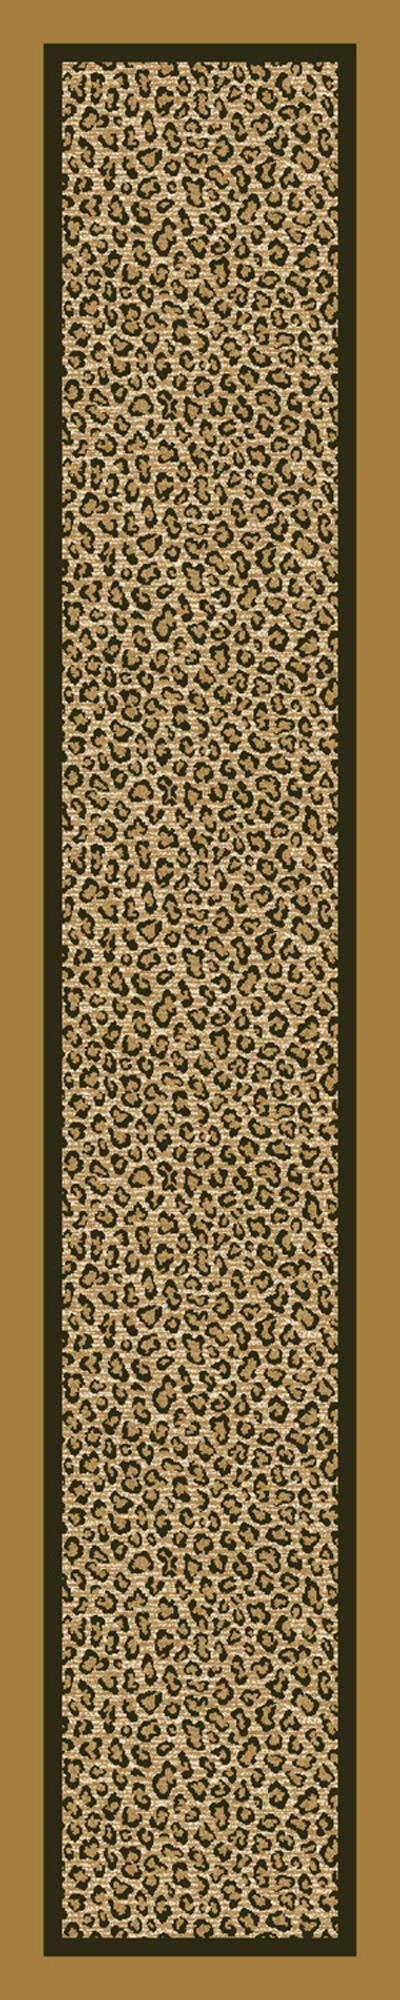 Asmora-04306 Light Leopard